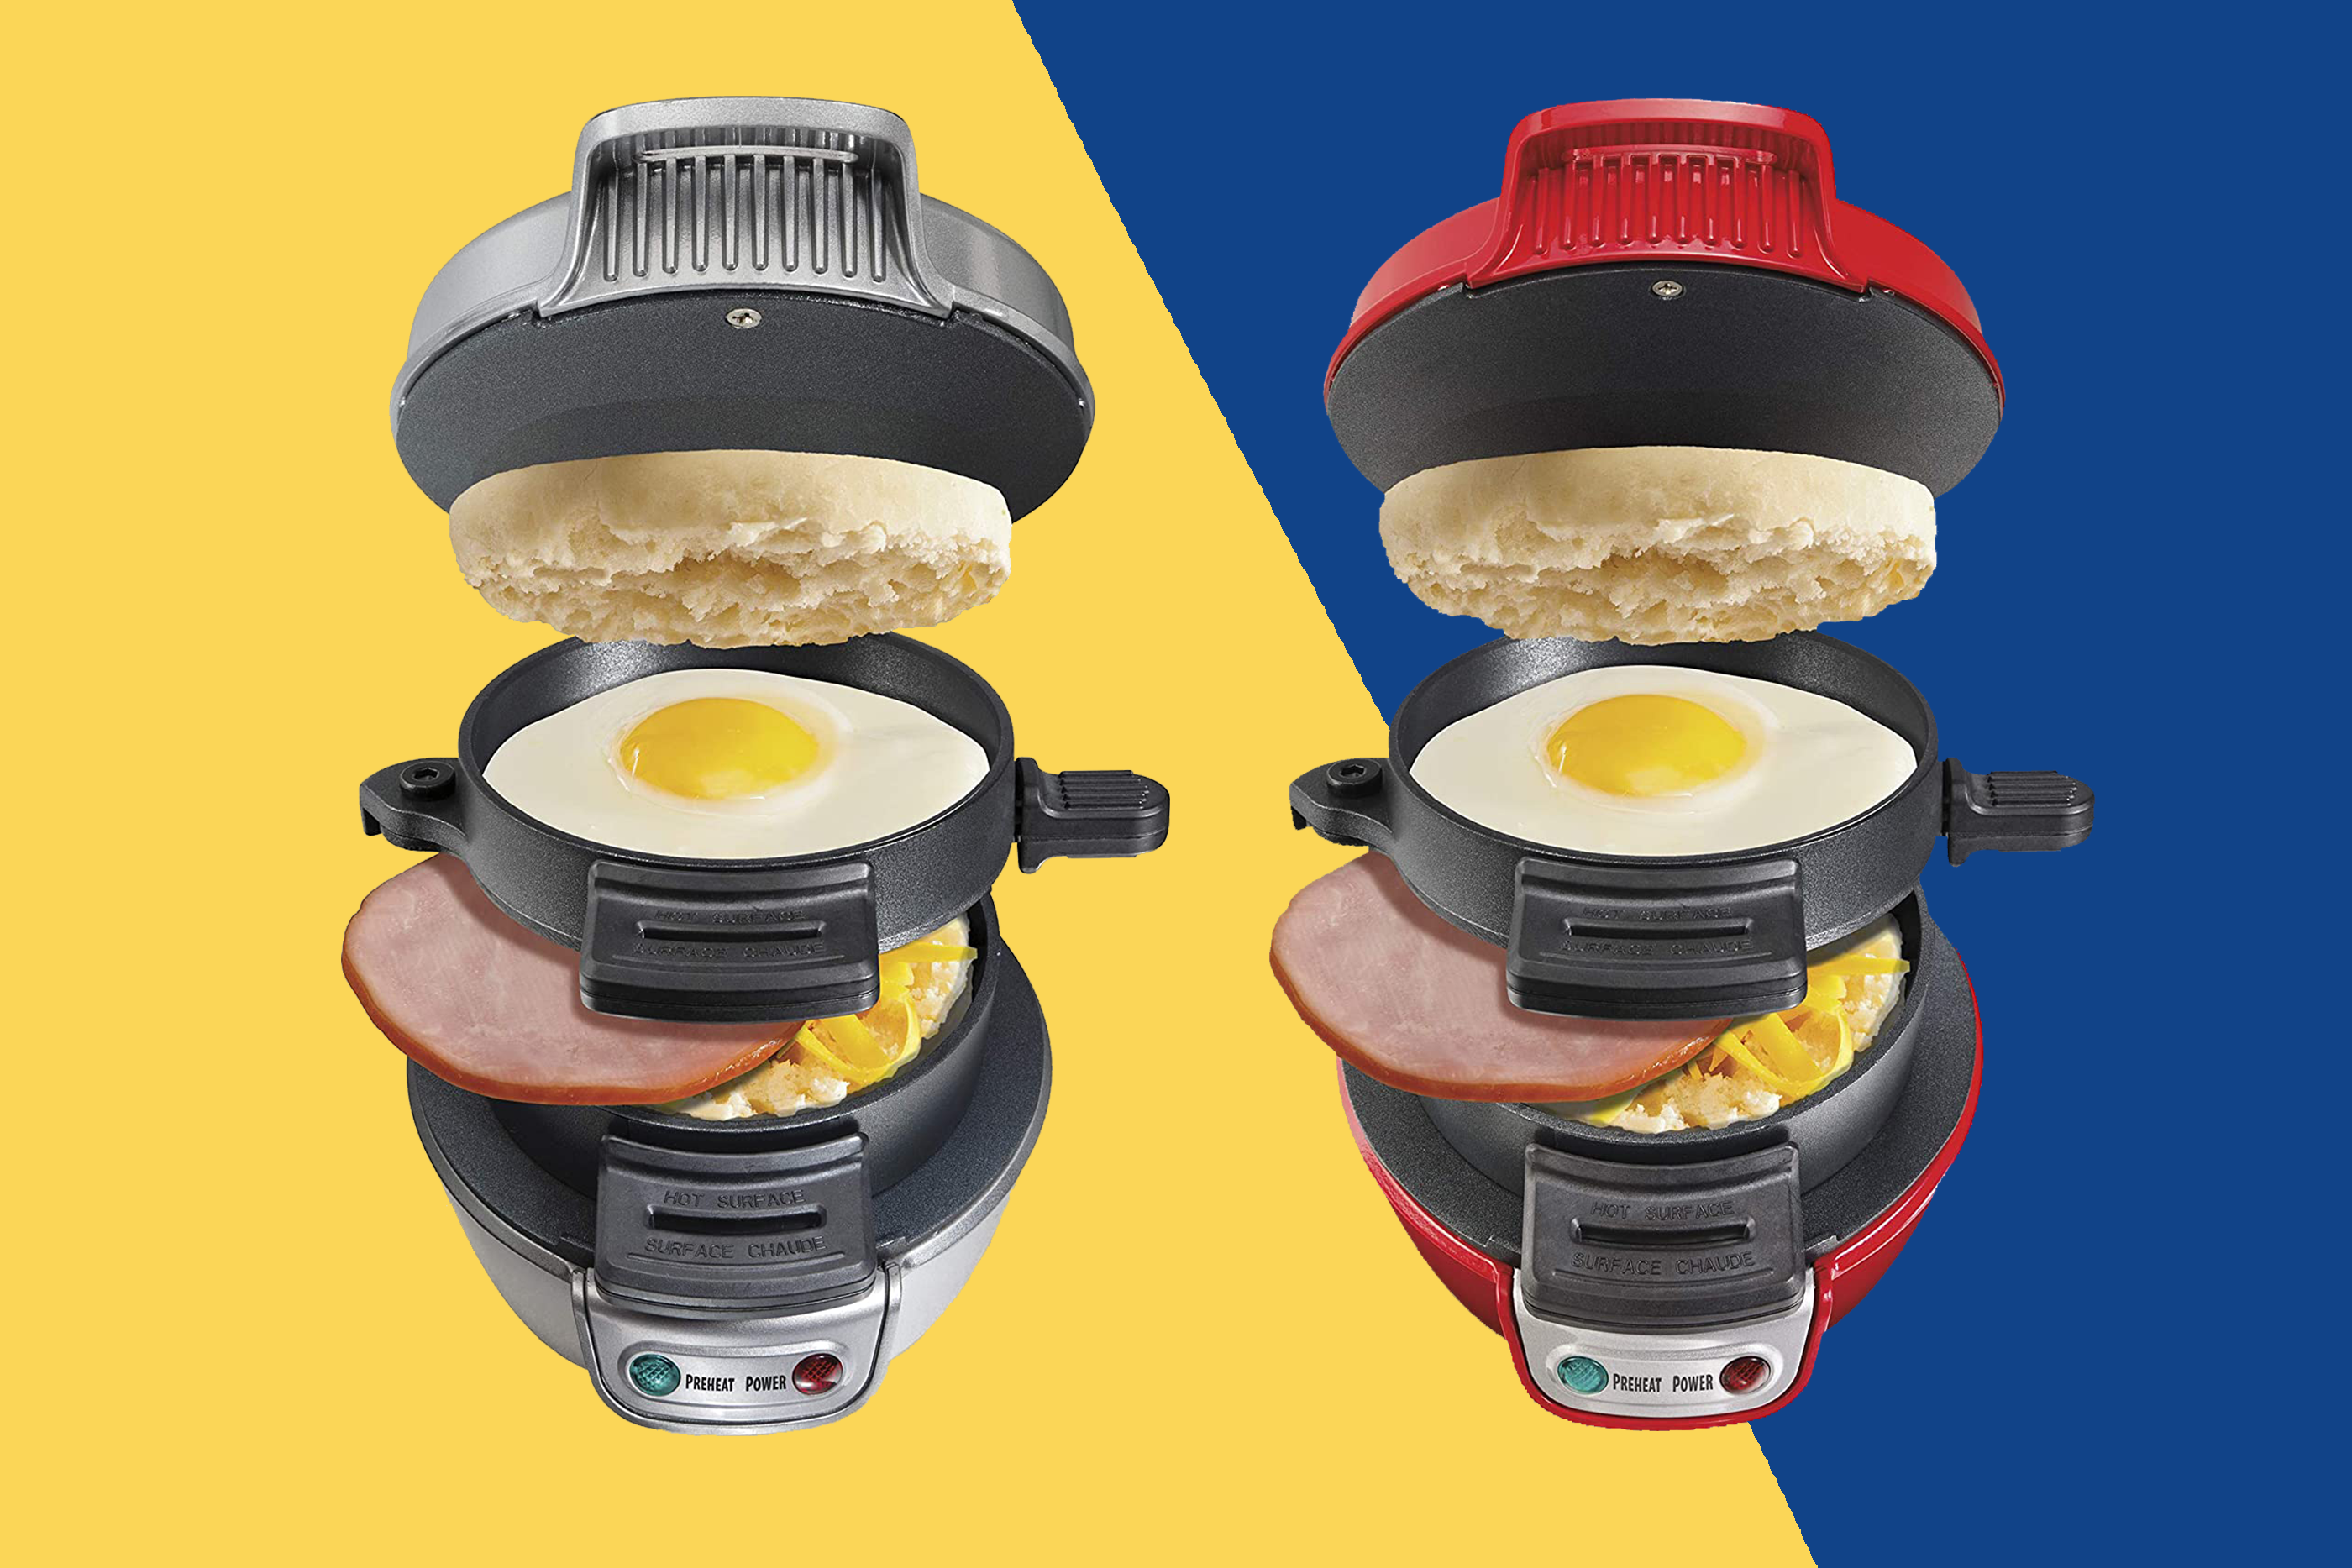 two hamilton beach sandwich makers on a yellow and blue background